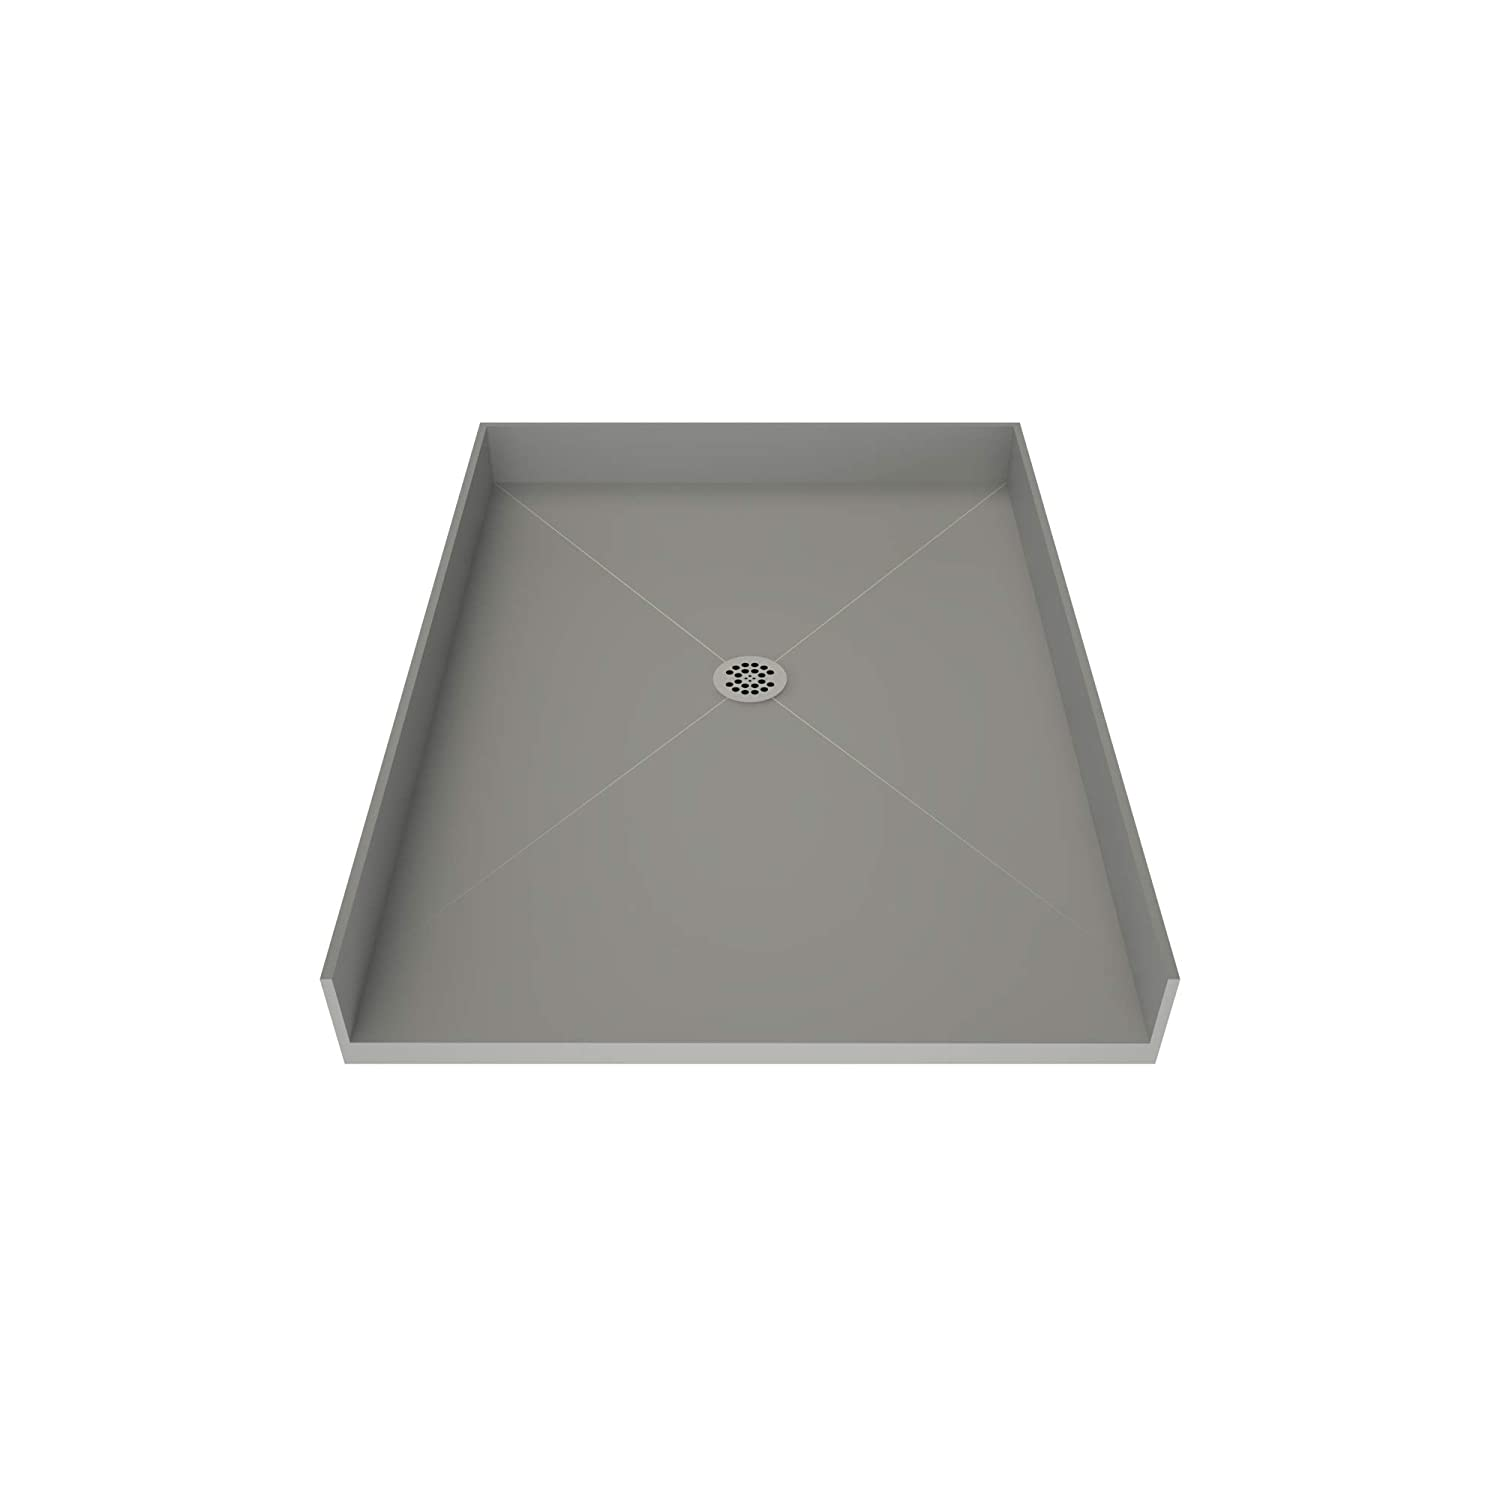 Tile Redi Barrier Free Shower Pan.Amazon Com Tile Redi 4838cbf Pvc Barrier Free Shower Pan